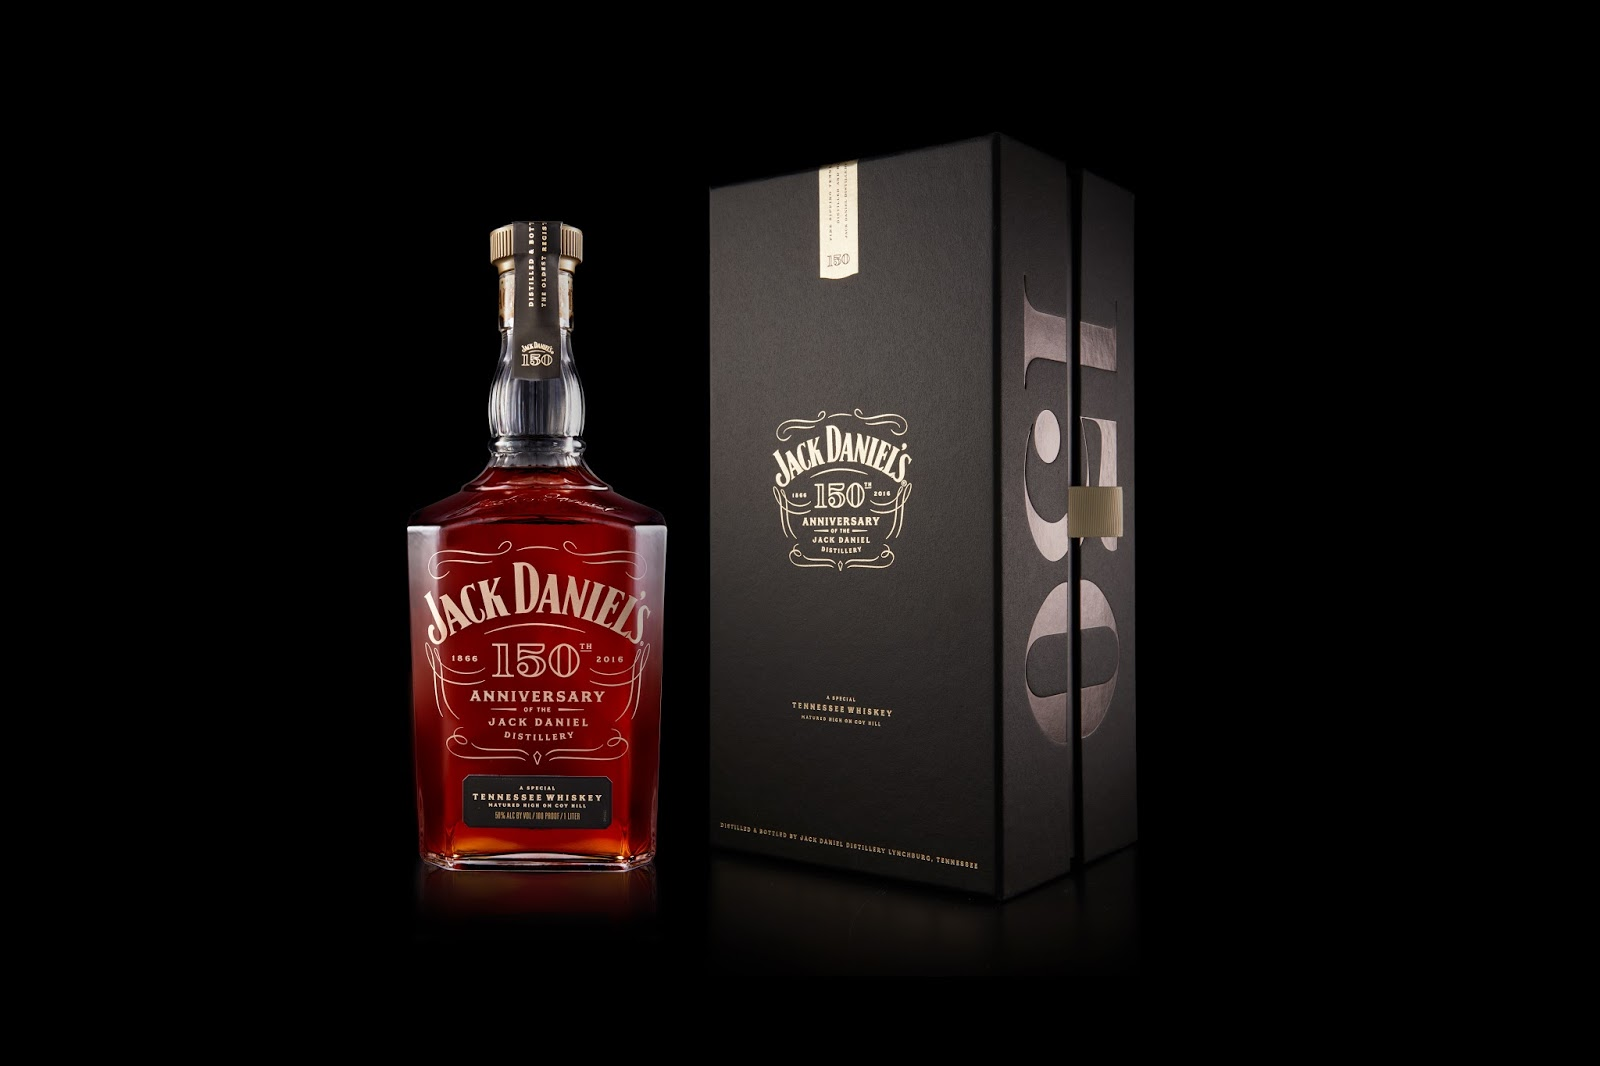 Jack Daniels Tennessee Whiskey Glass 150th Anniversary 2016 UK Edition Boxed